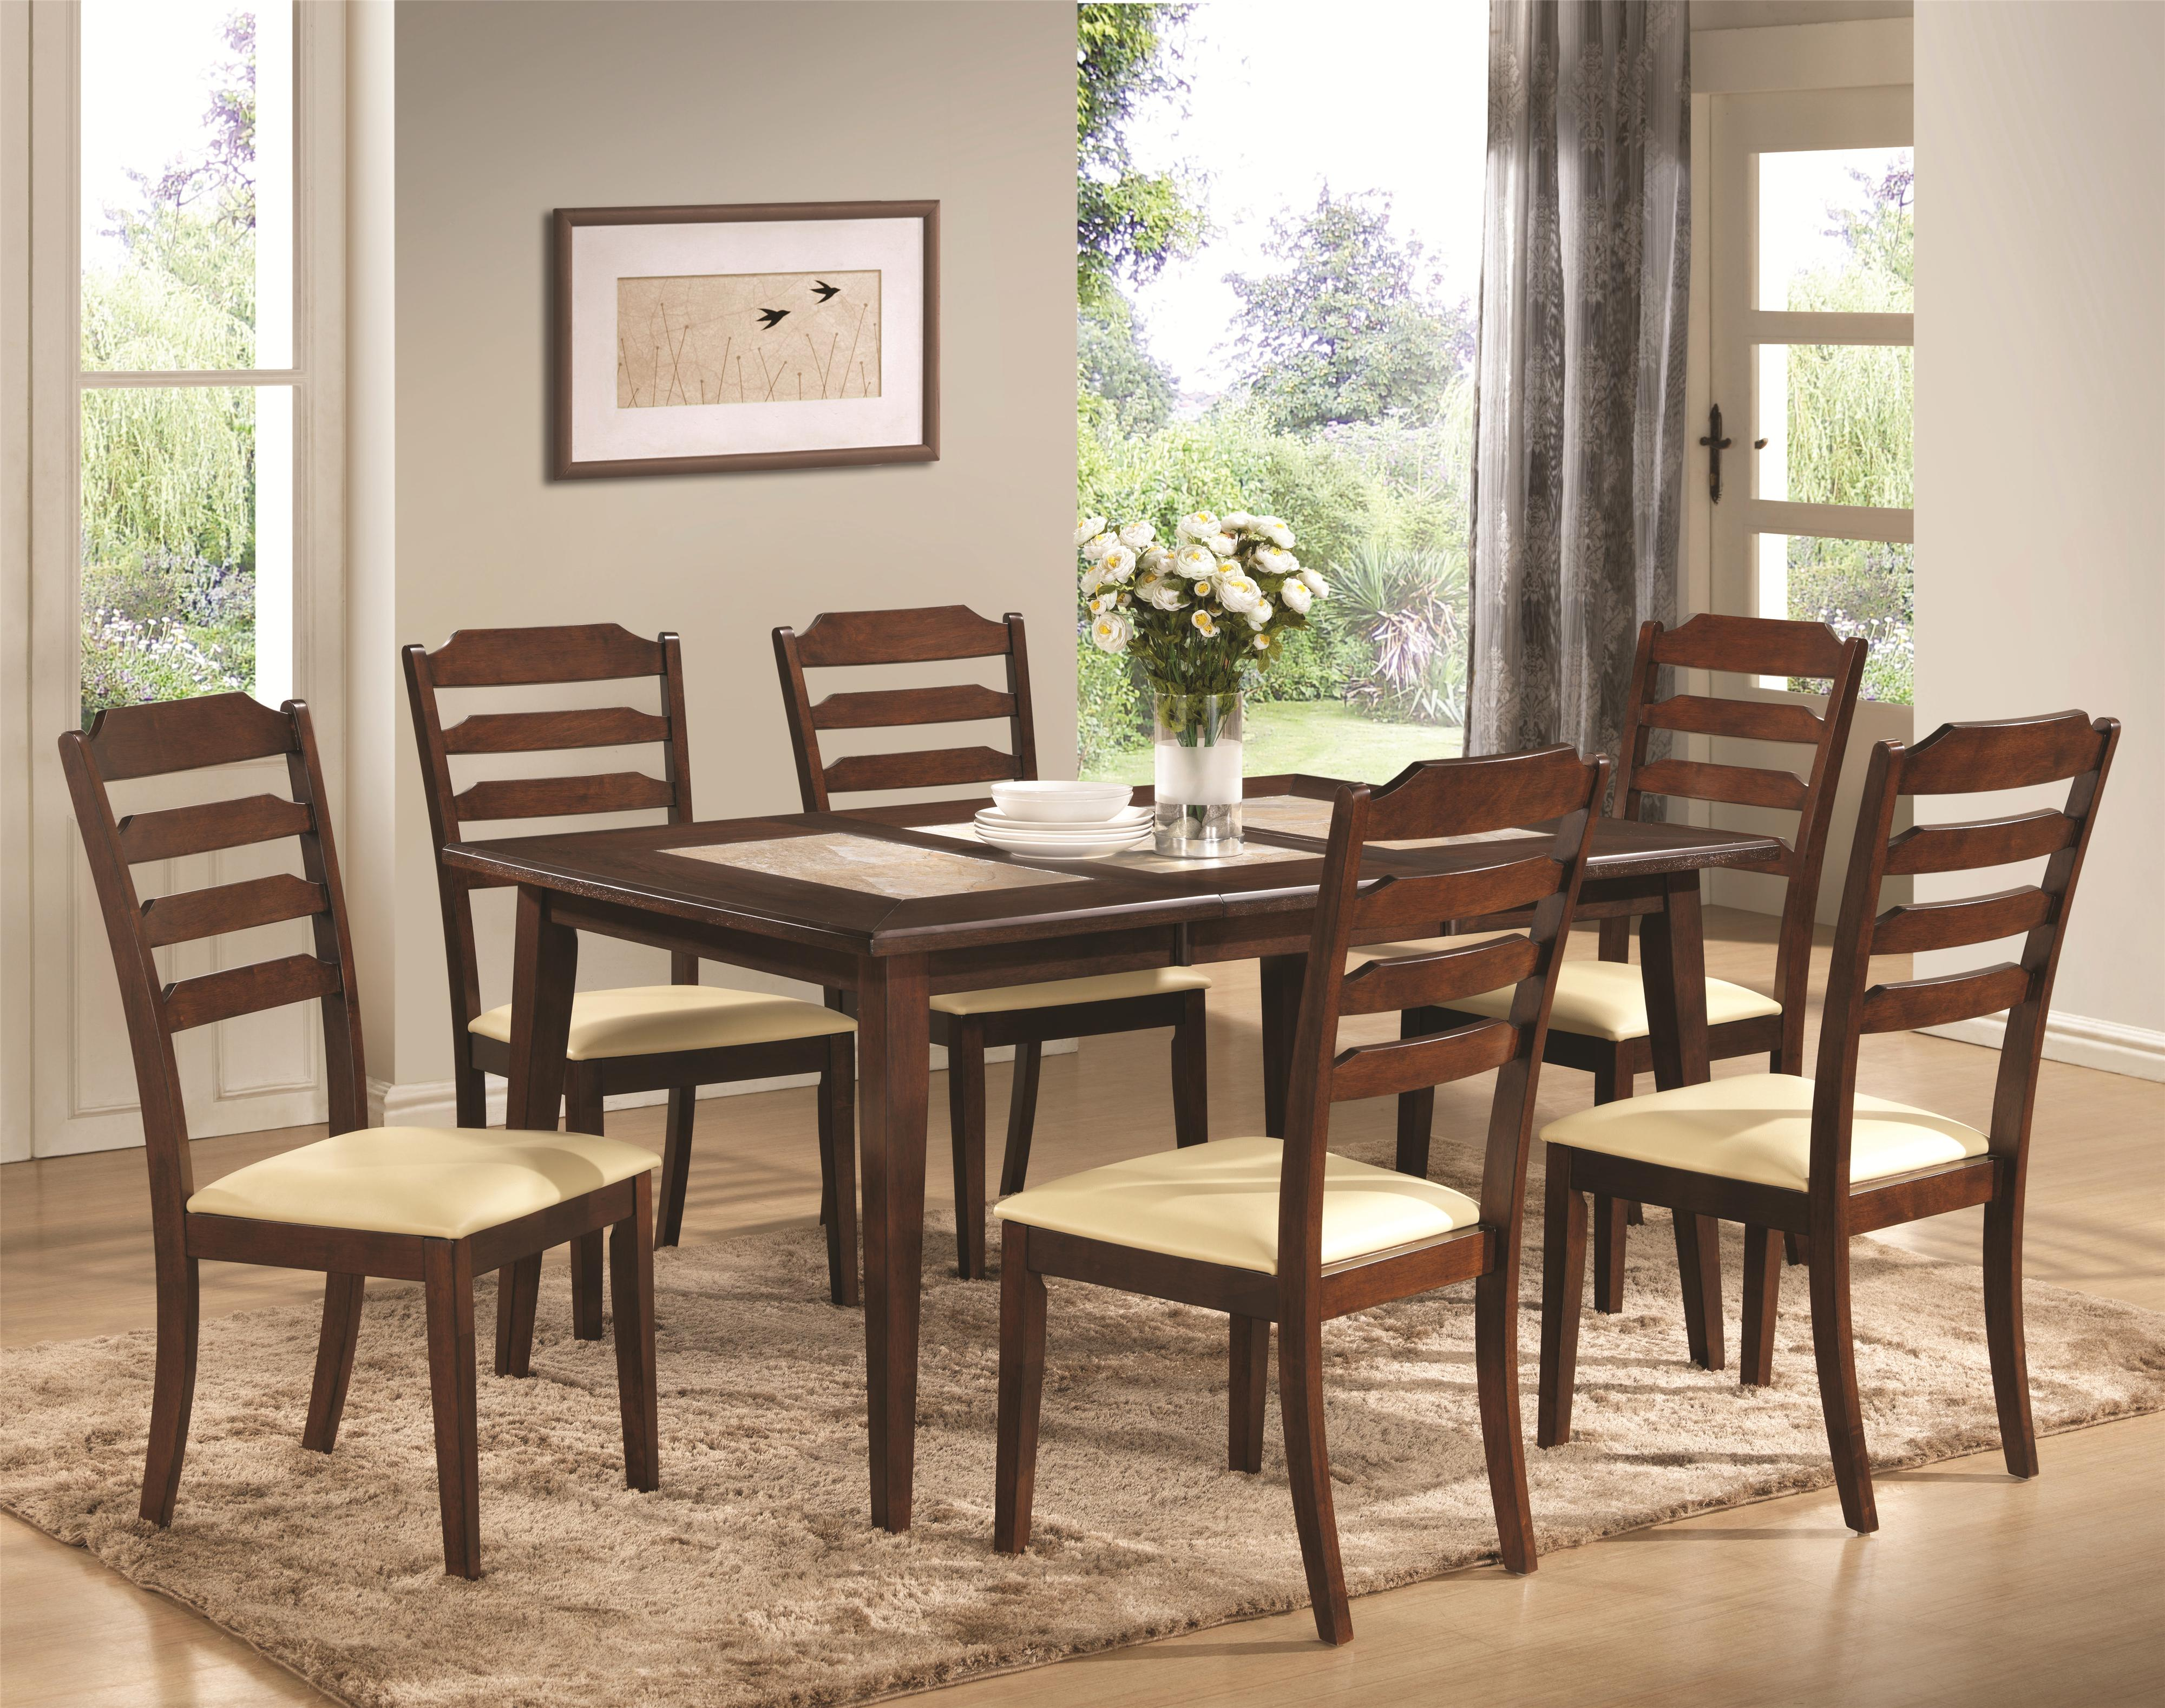 Baker 7 Piece Dining Set With Rectangular Table And Ladder Back Chairs With U